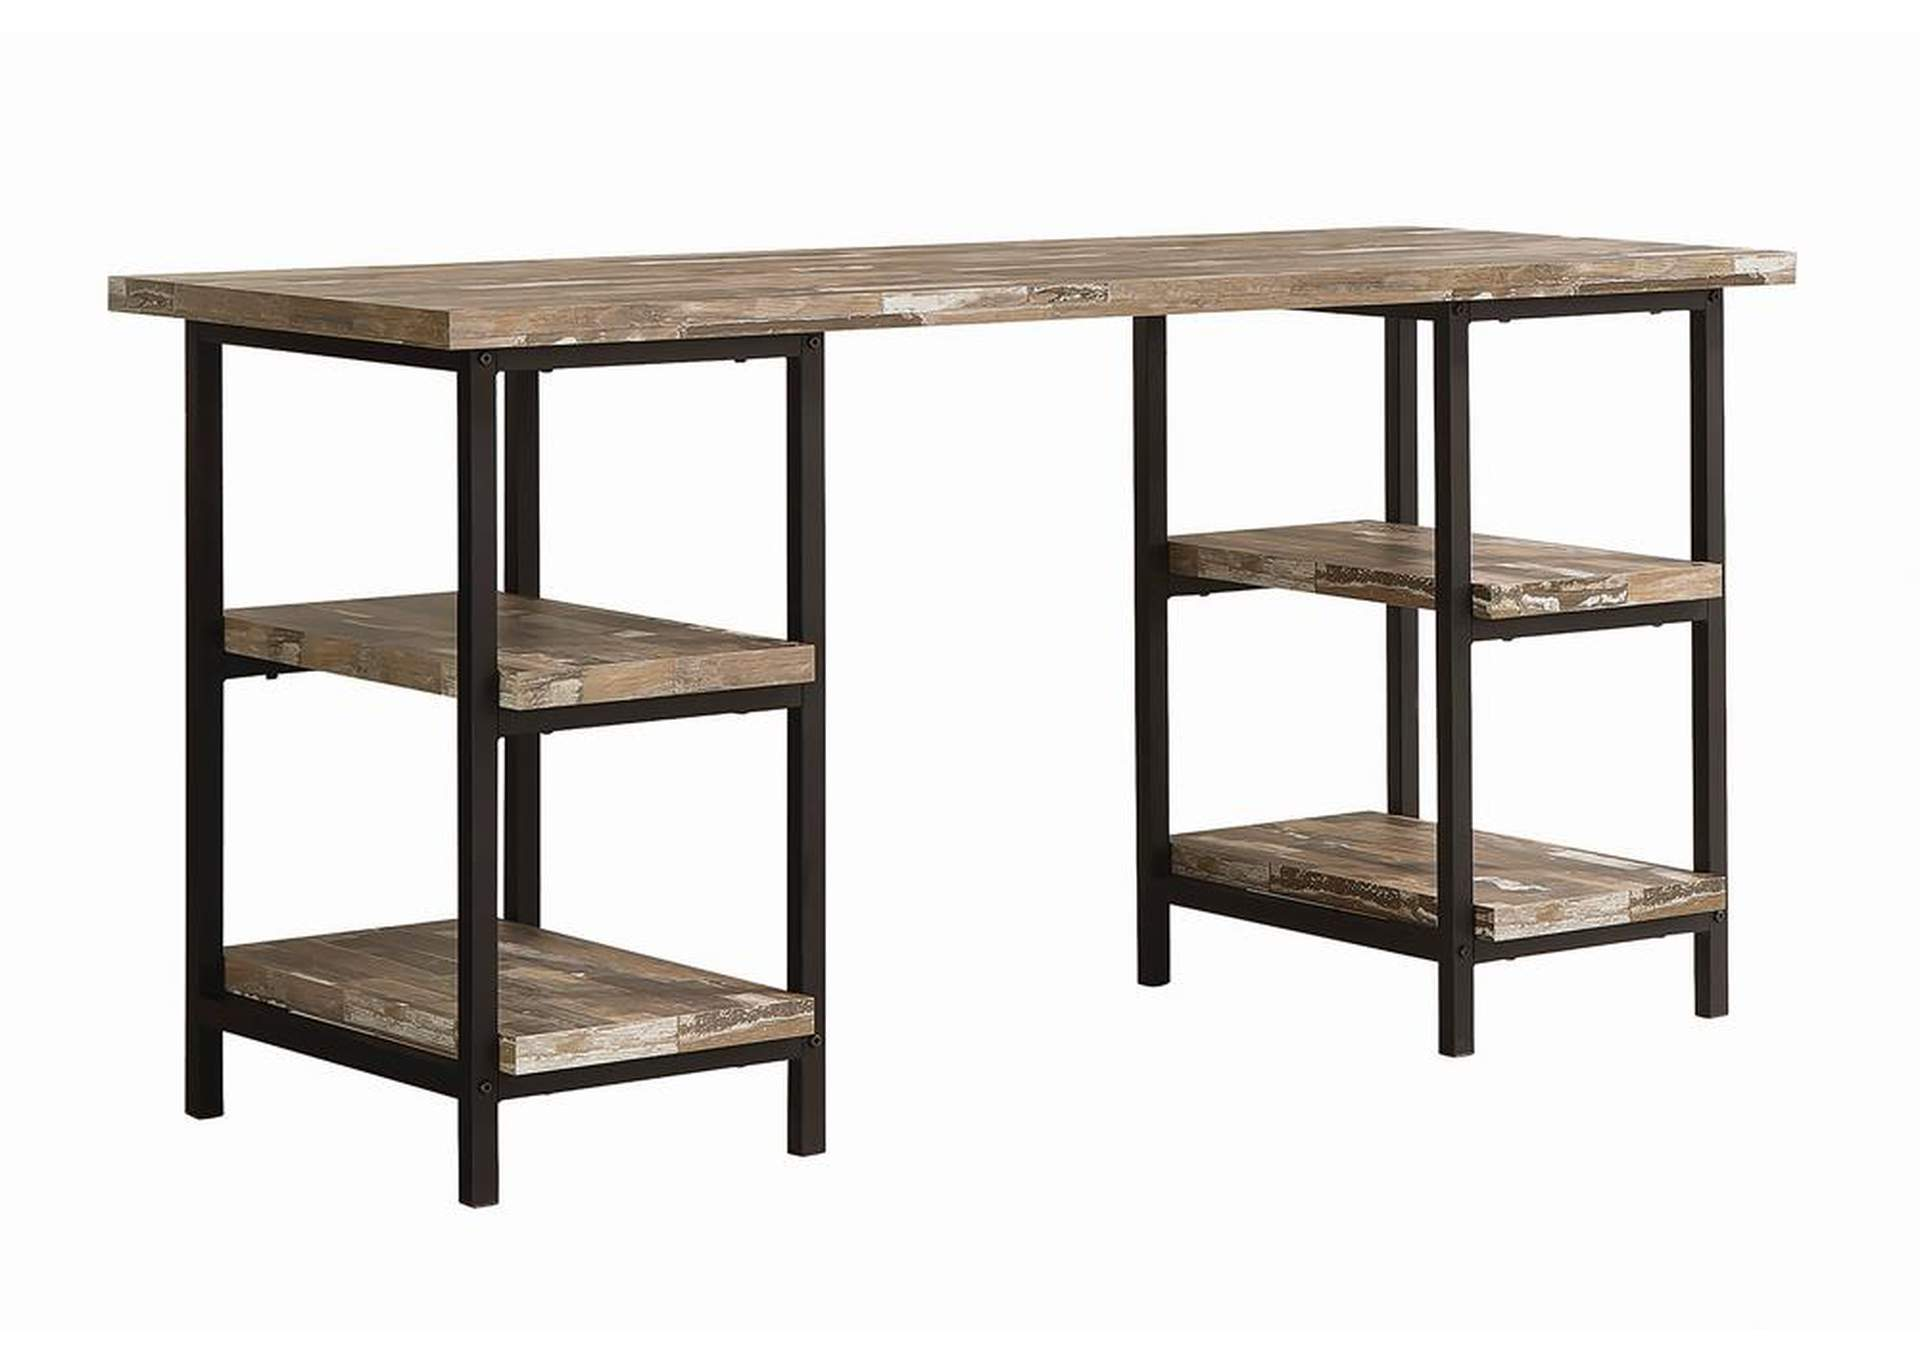 Salvaged Cabin Skelton Industrial Salvaged Cabin Writing Desk,Coaster Furniture